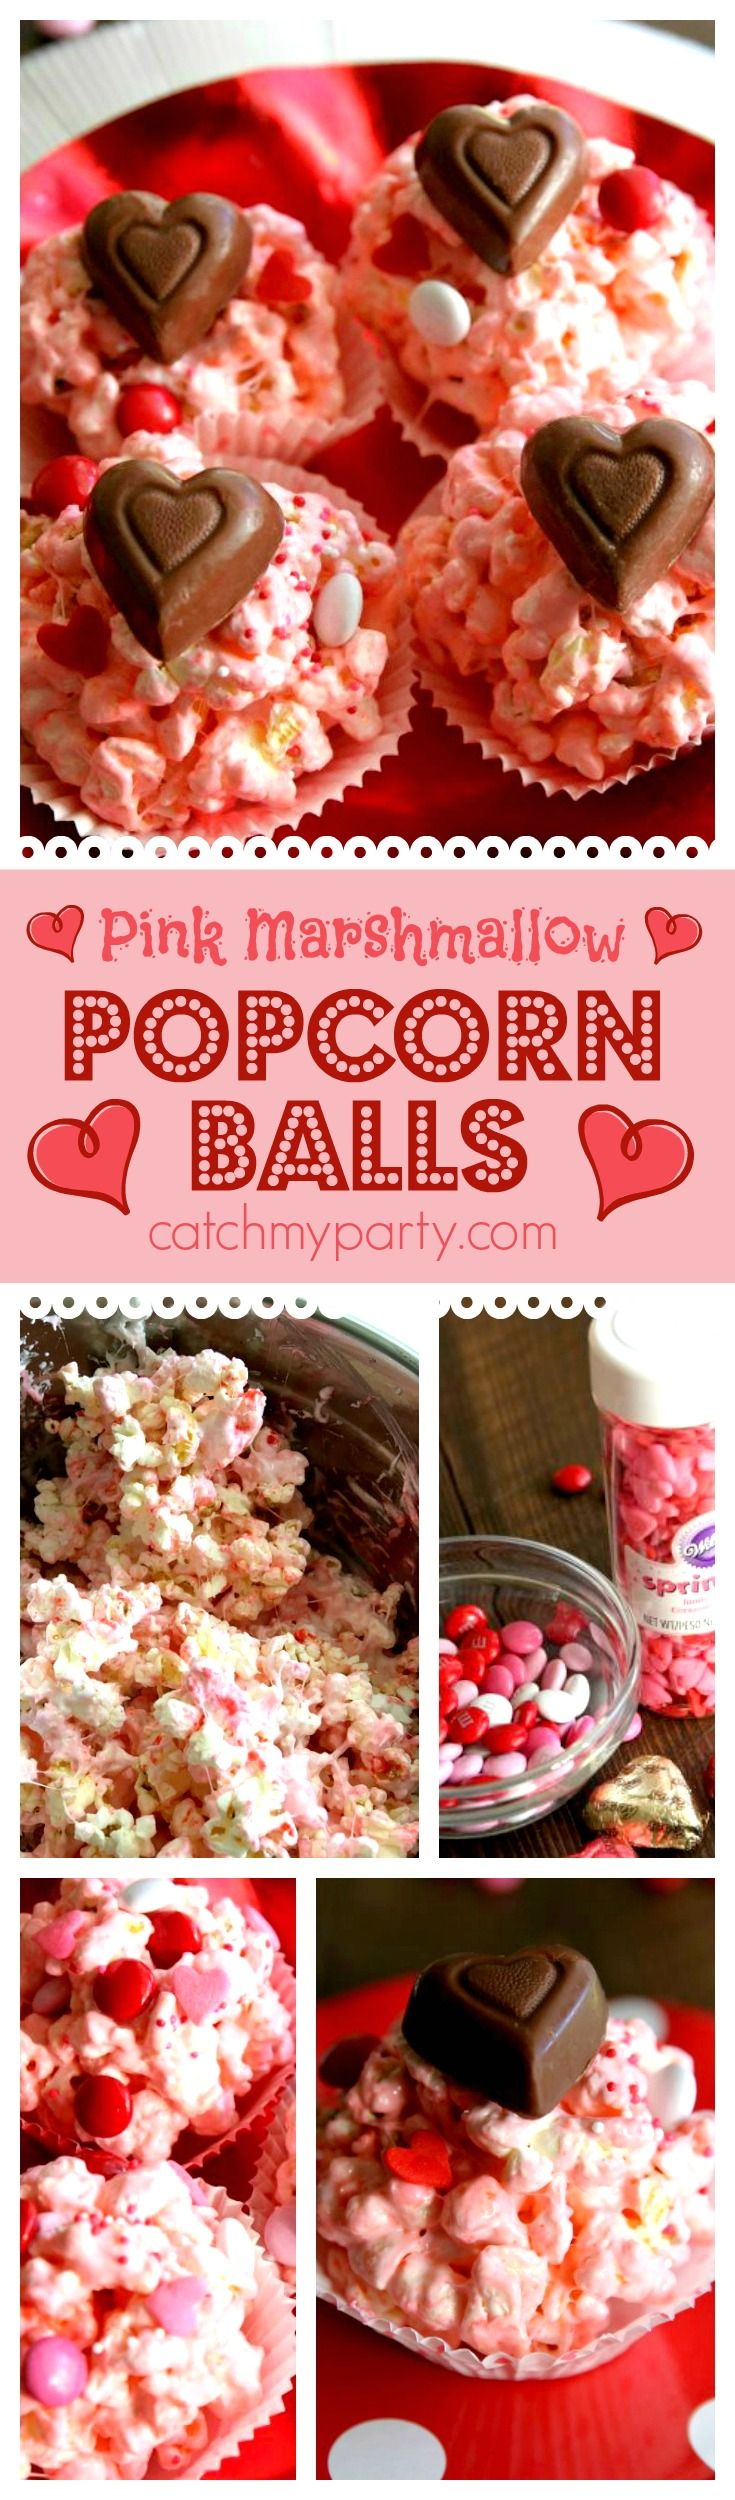 767 best Valentine's Day Party Ideas images on Pinterest   Parties ...